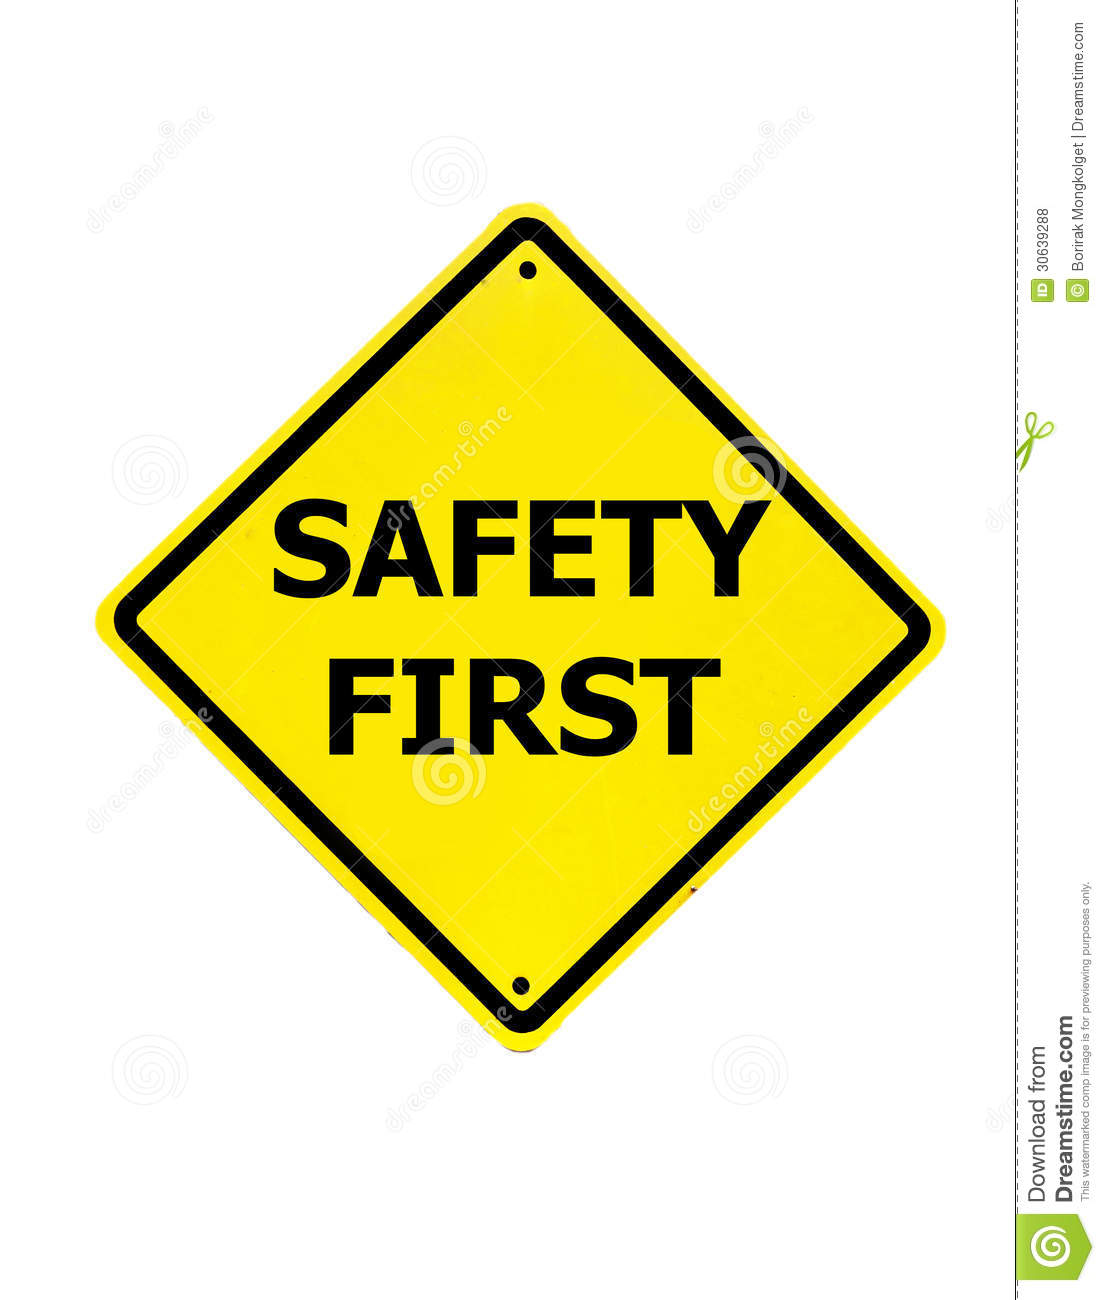 Free Online House Plans Safety First Sign On A White Royalty Free Stock Photos